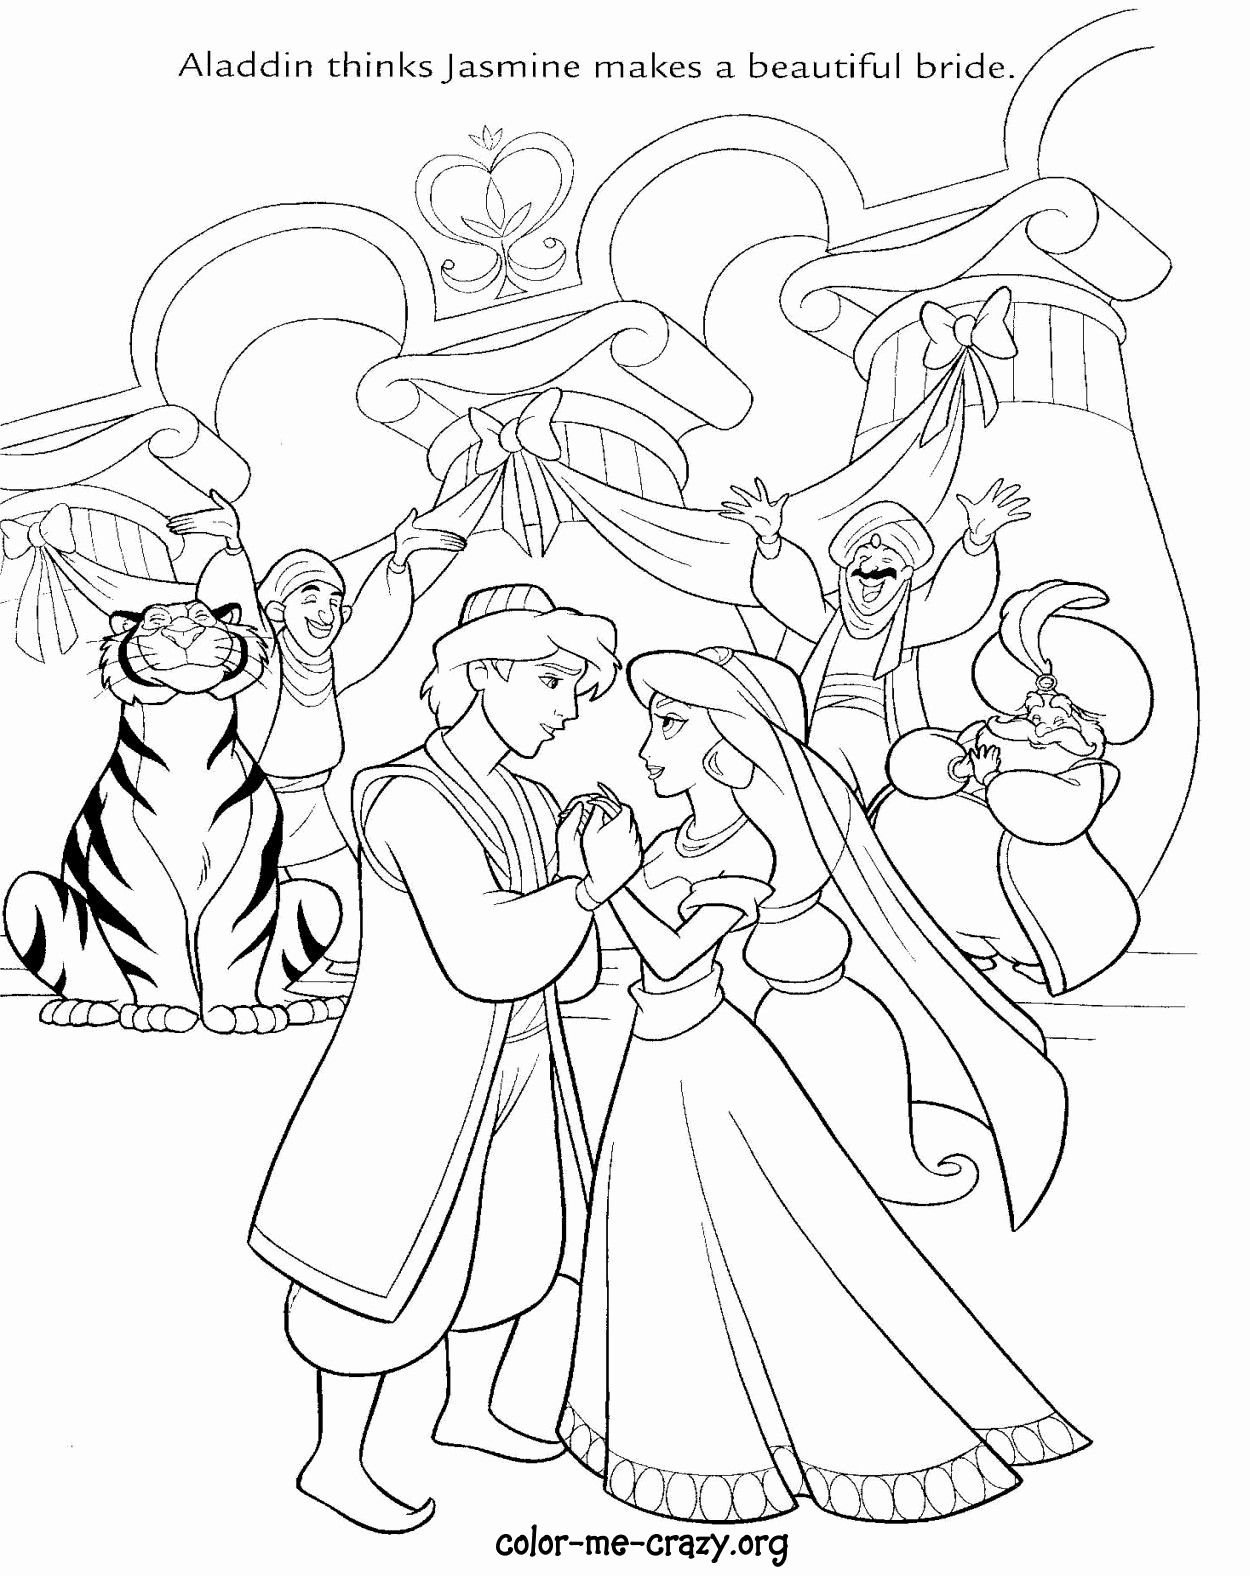 Princess Wedding Coloring Pages – From the thousand photographs